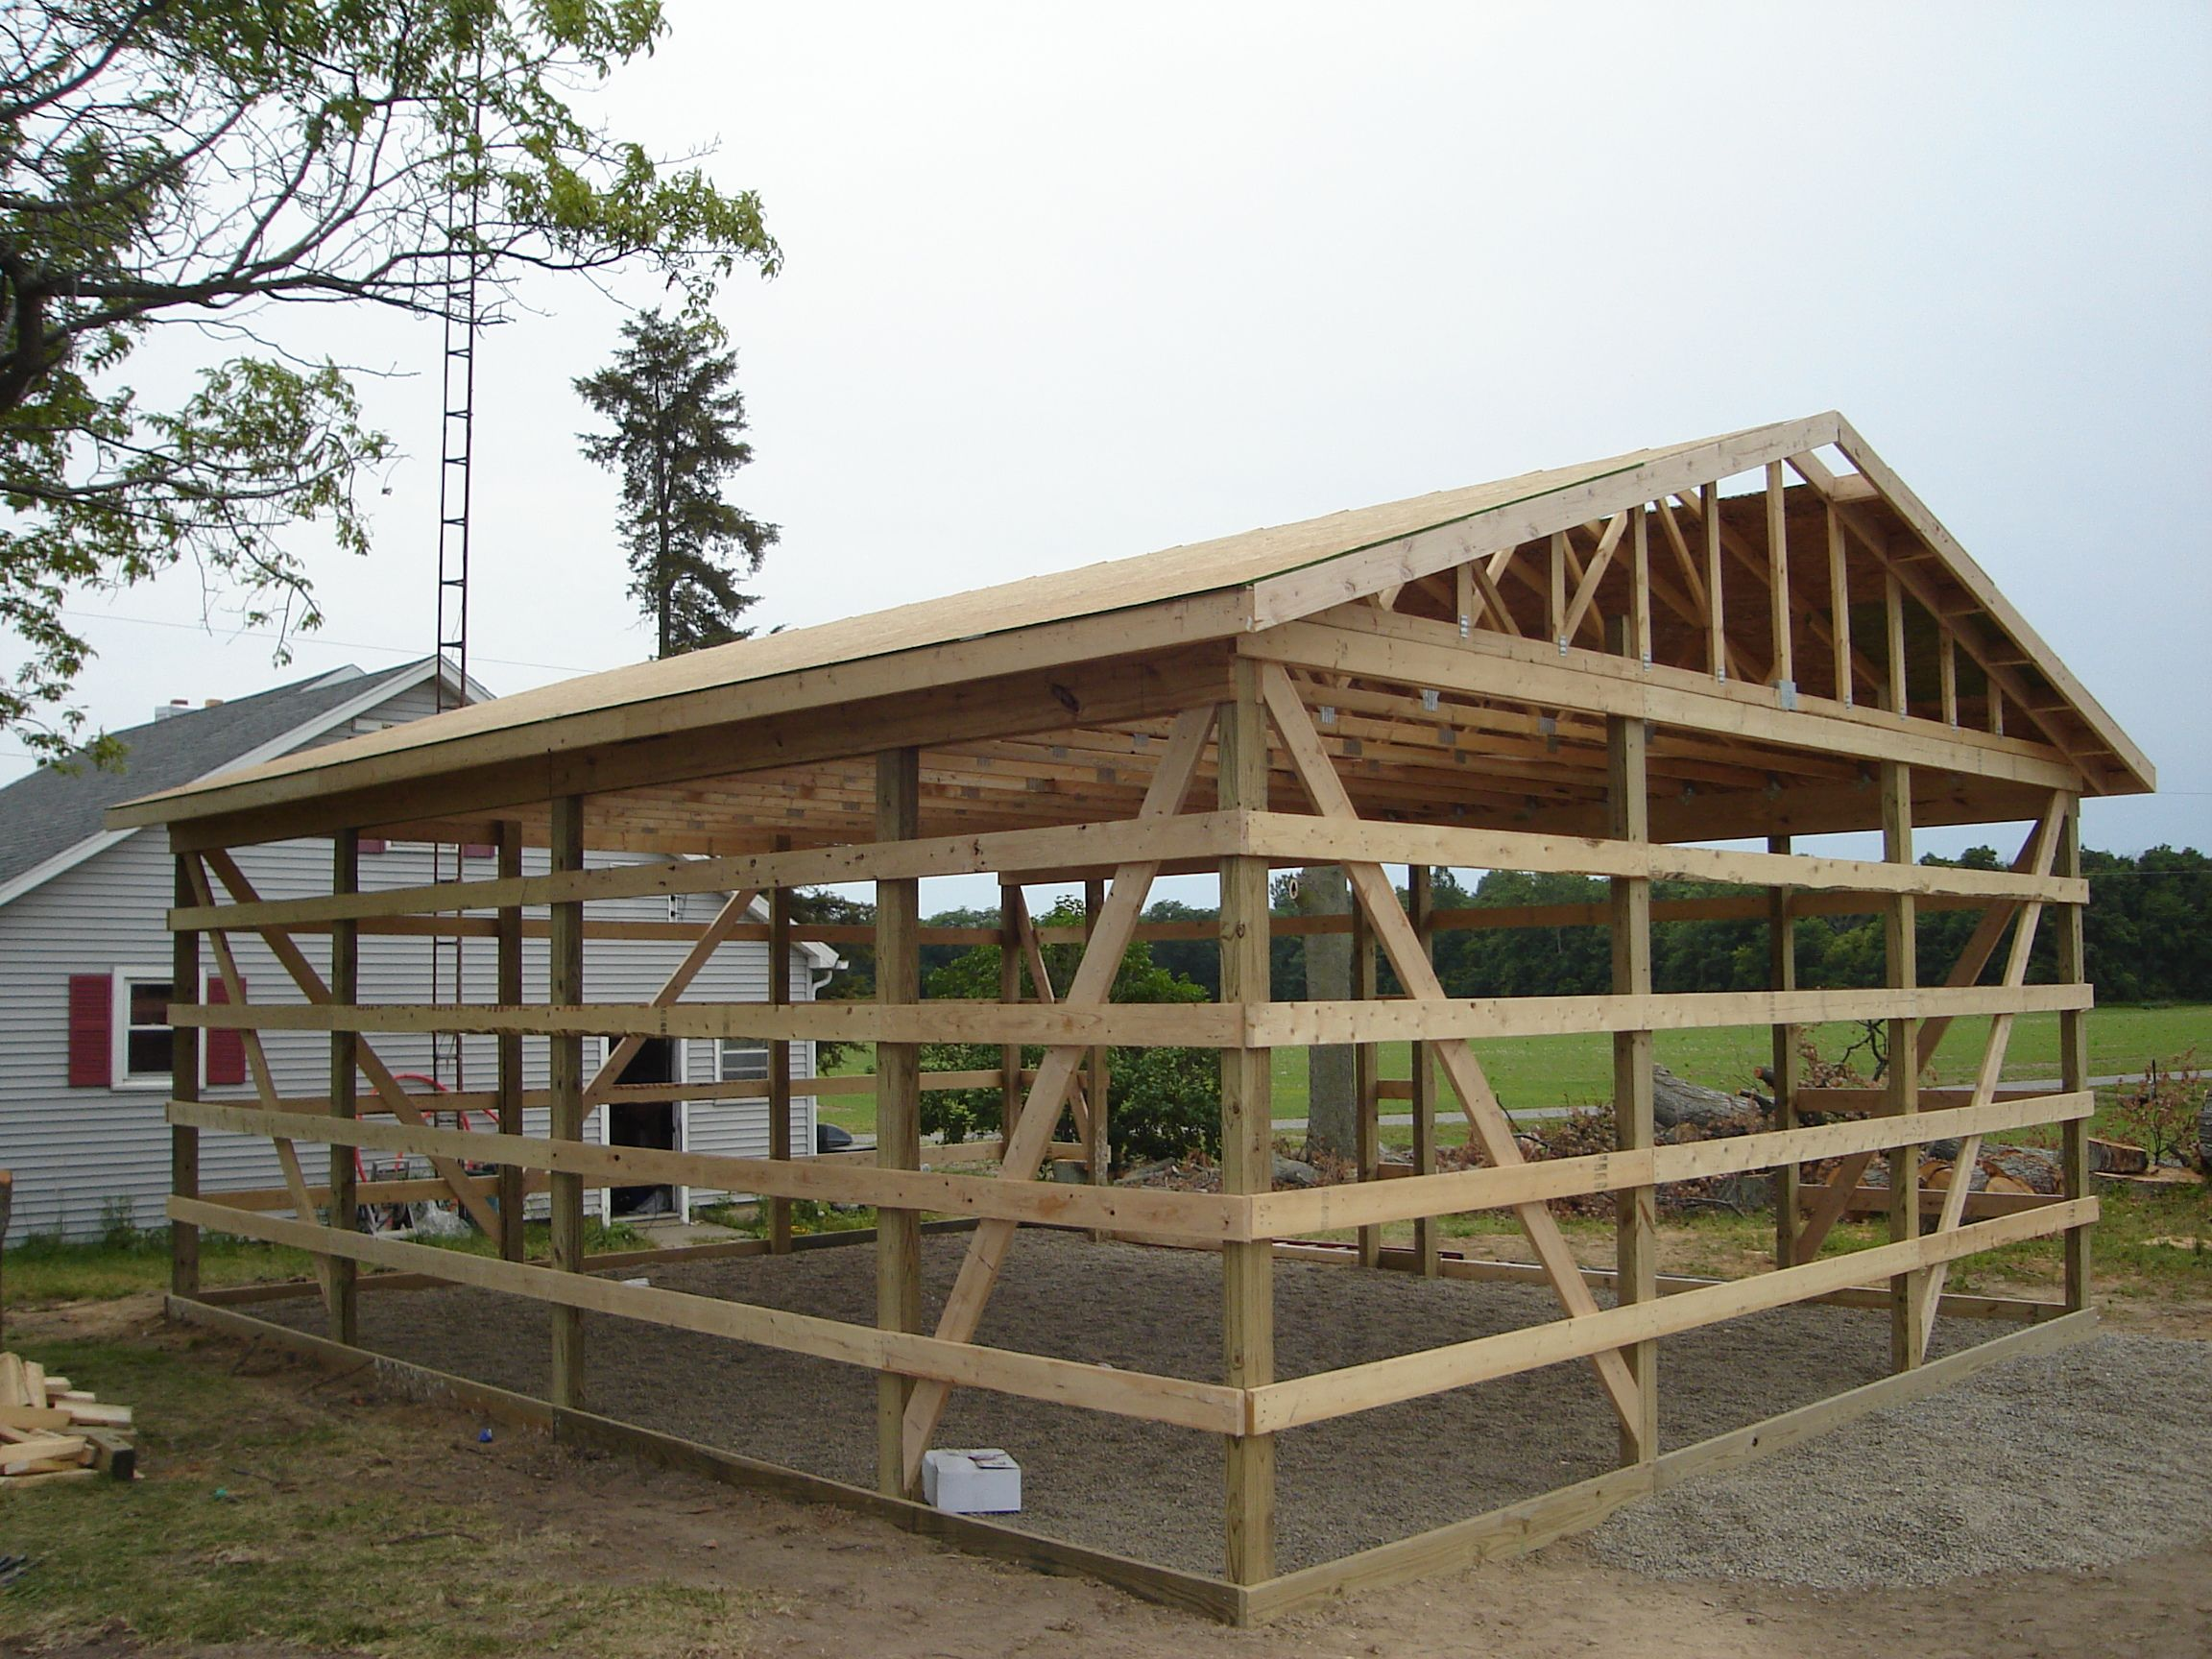 24' x 30' Pole Barn Garage Hicksville, Ohio